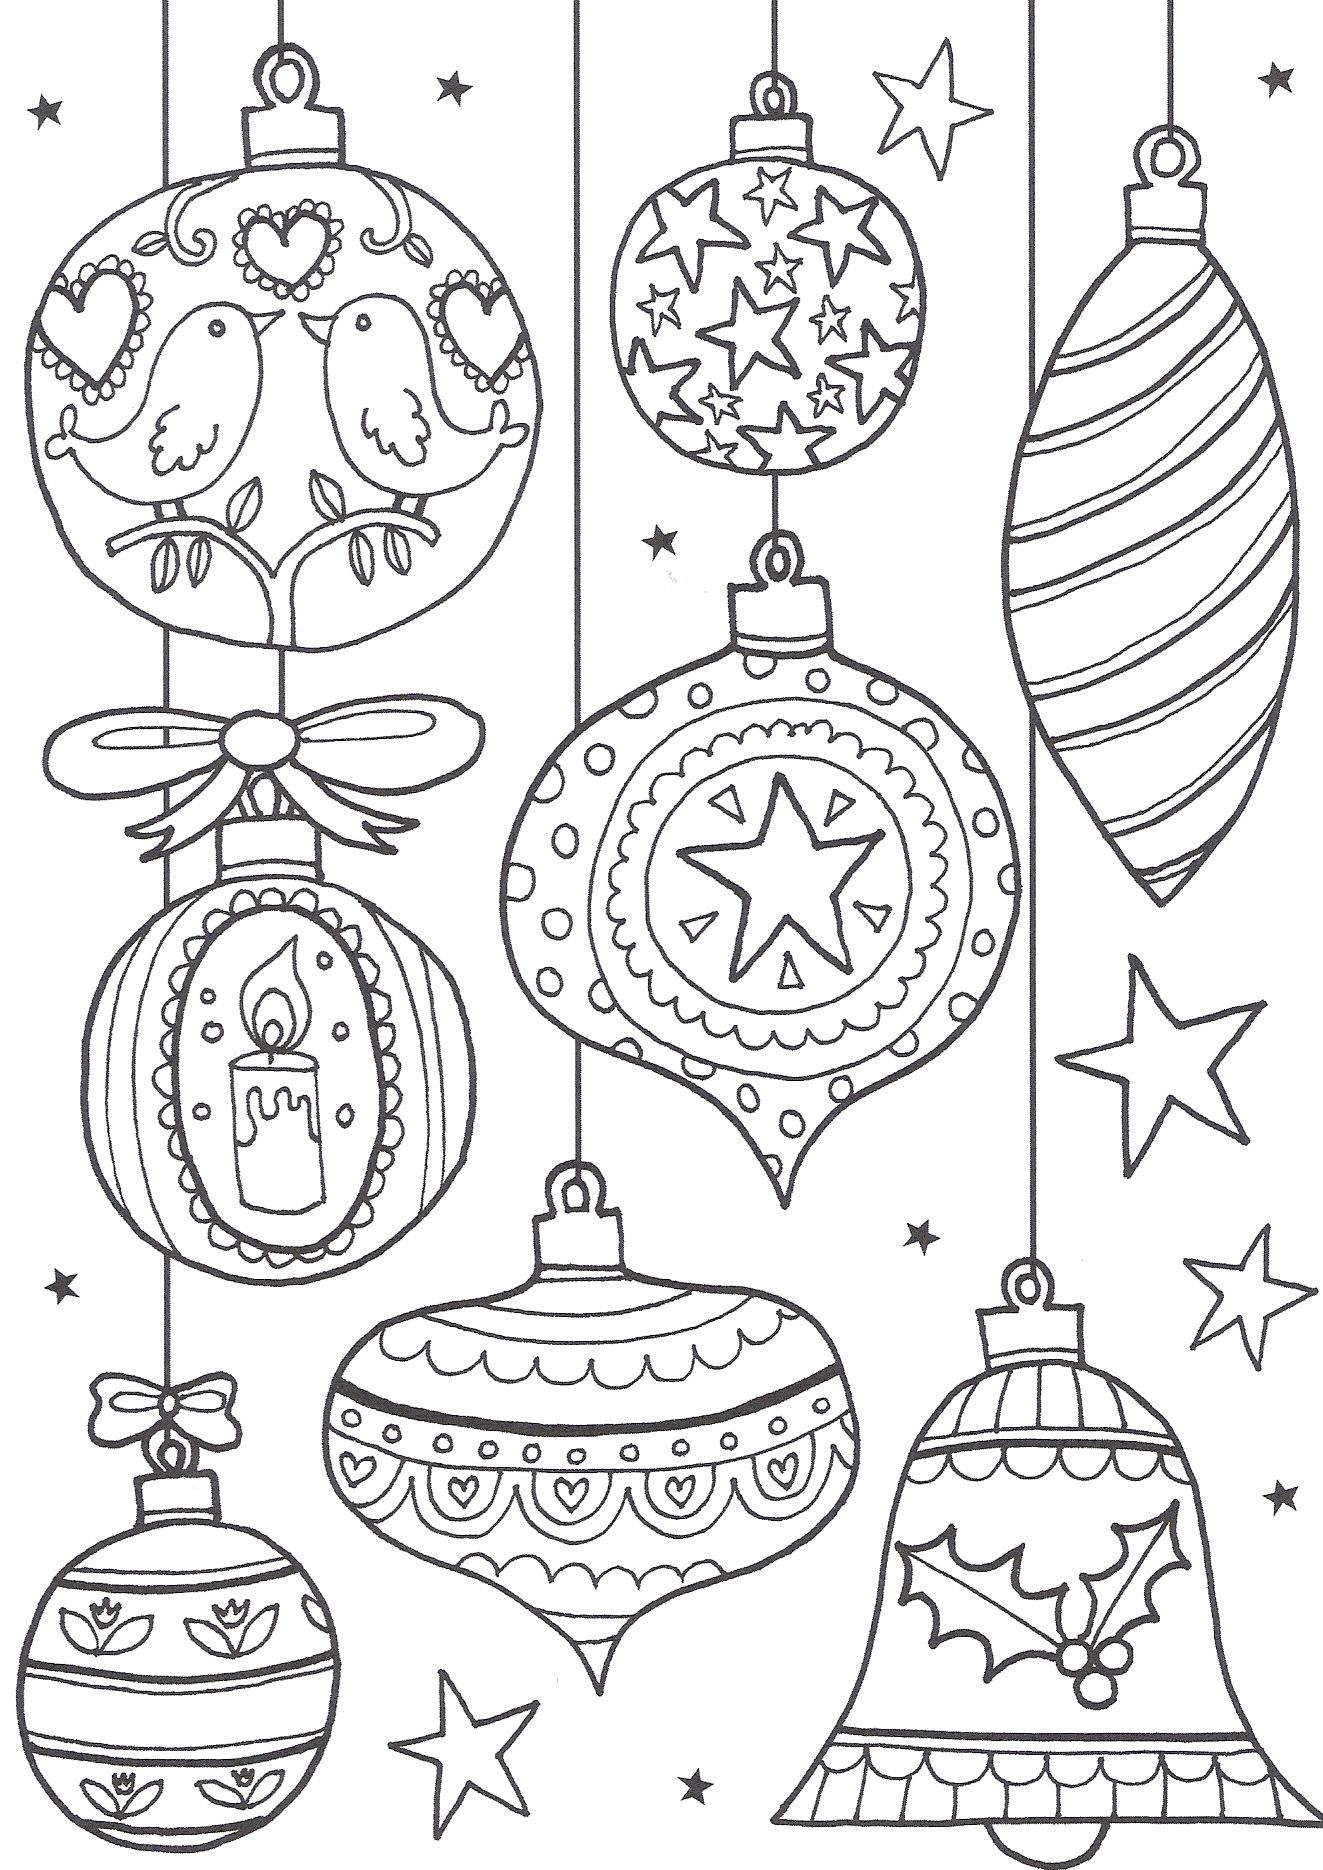 Christmas Coloring Worksheets Free With Colouring Pages For Adults The Ultimate Roundup